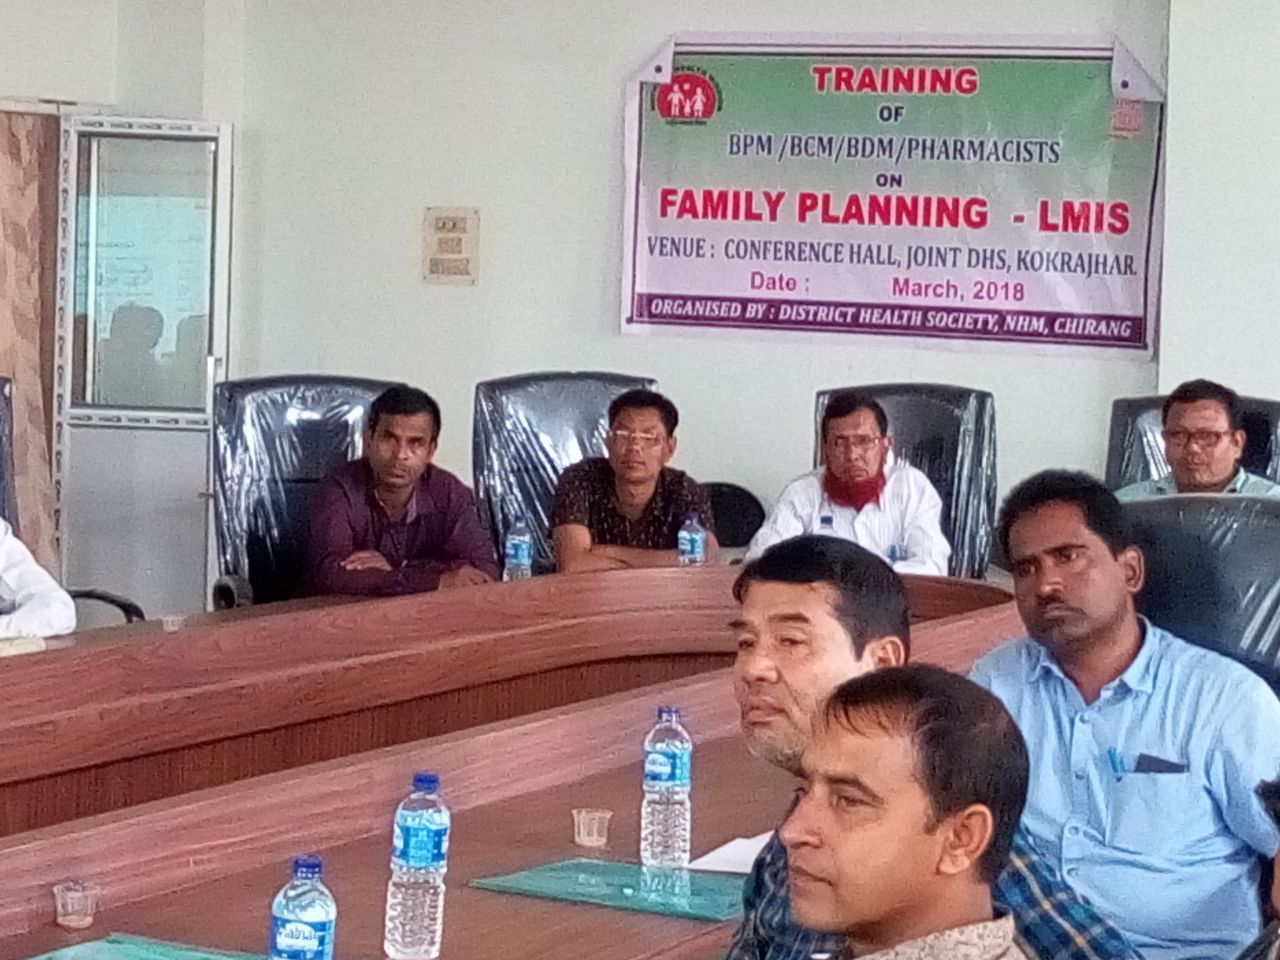 FPLMIS trainings are successfully being held across districts in Assam. Recently held at Kokrajhar district.